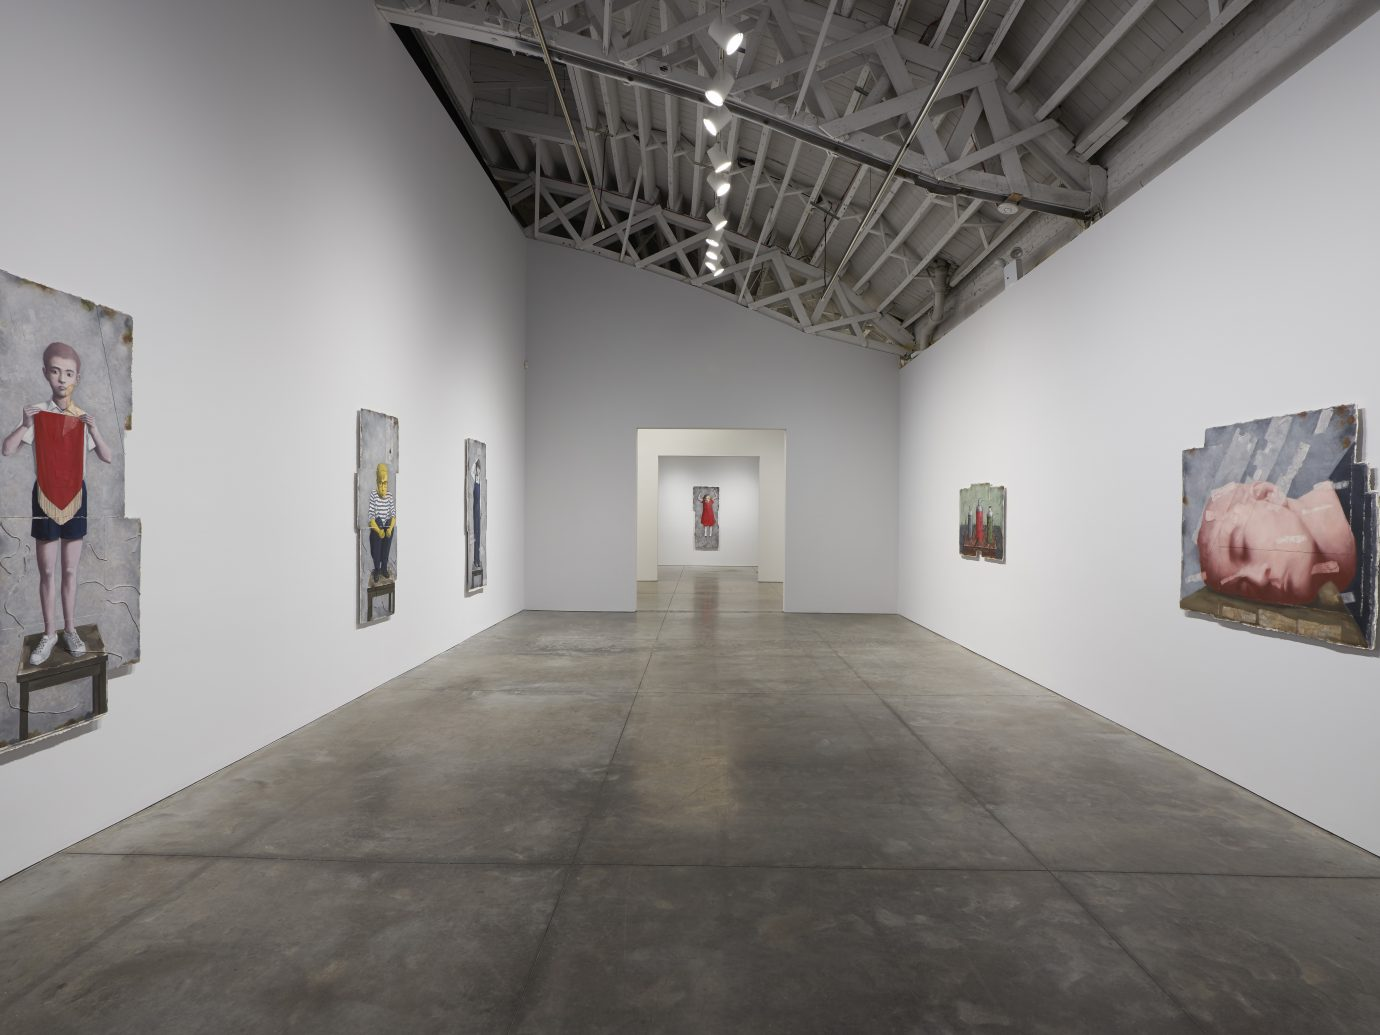 Installation view of Zhang Xiaogang: Recent Works which was up at Pace Gallery from September 7th - October 20th, 2018